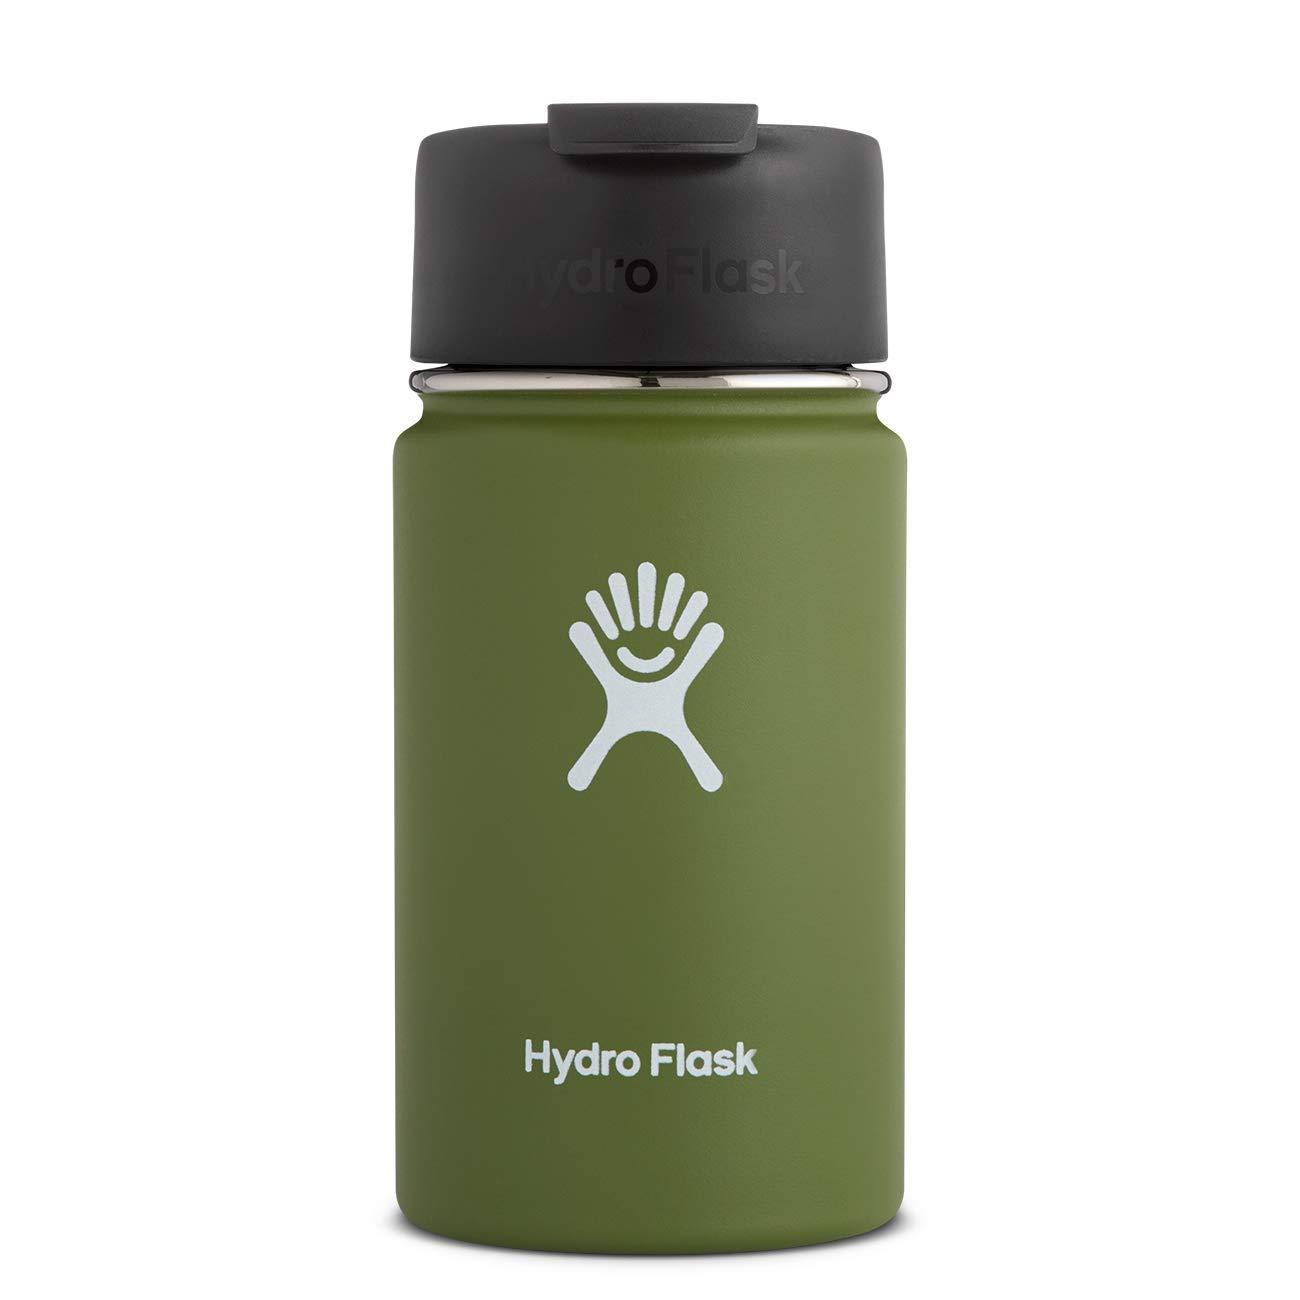 Hydro Flask Travel Coffee Flask - 12 oz, Olive by Hydro Flask